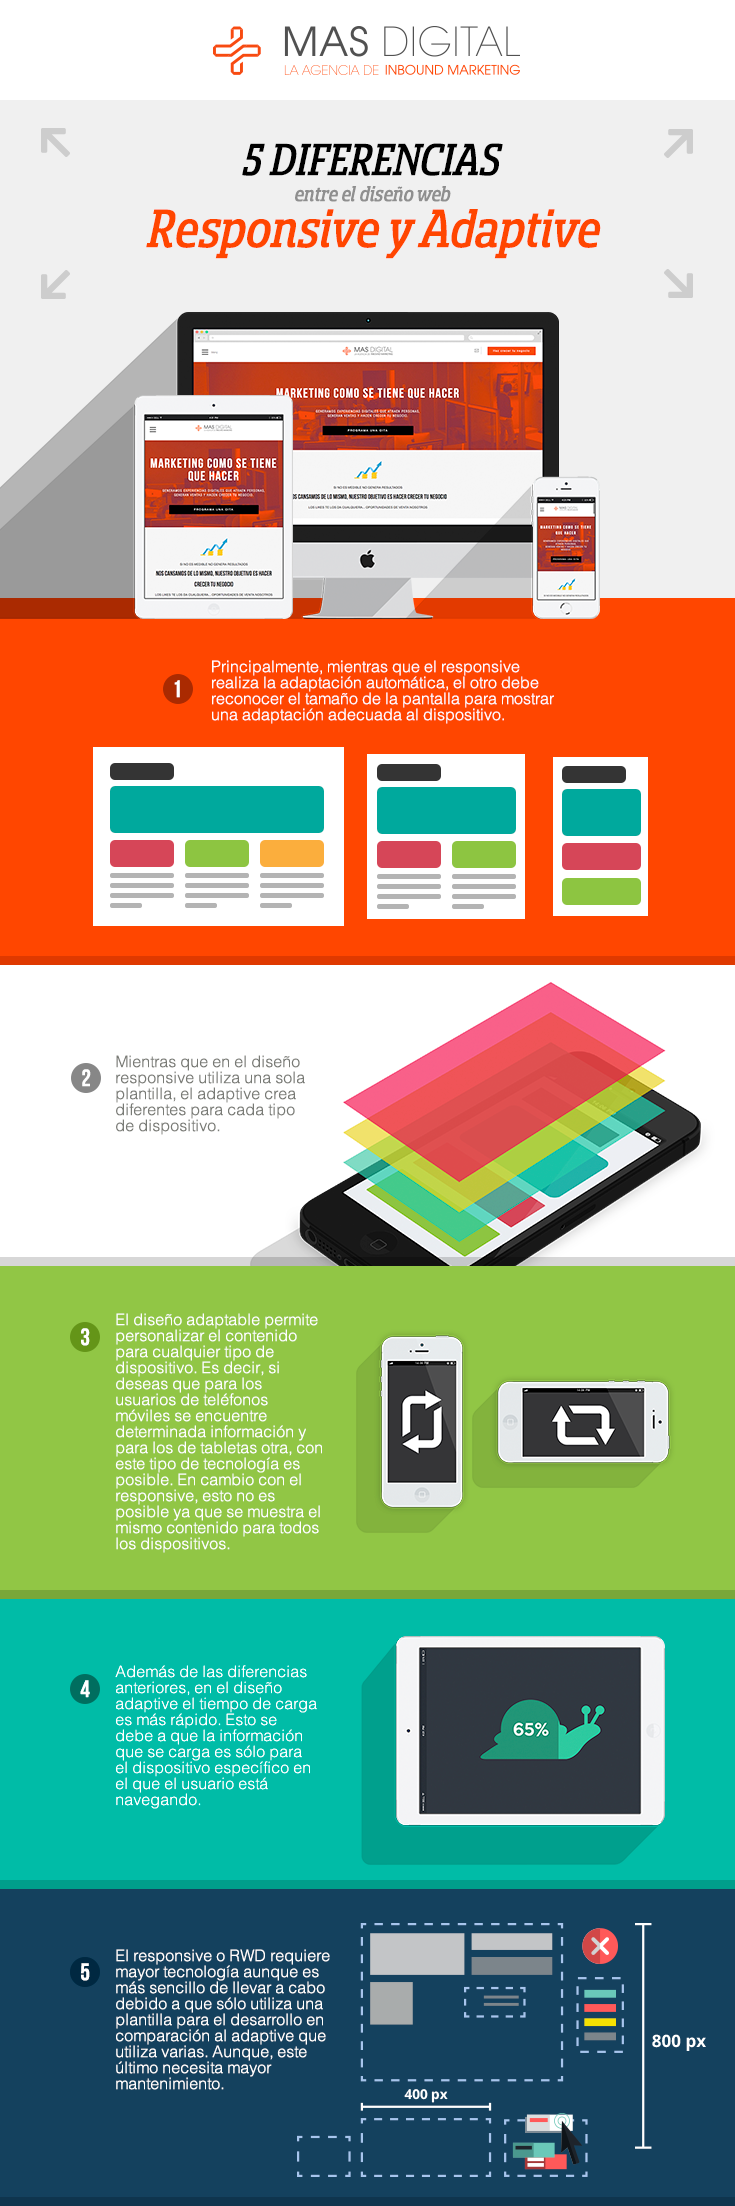 Infografa_diferencias_diseo_web_responsive_y_adaptivepng.png